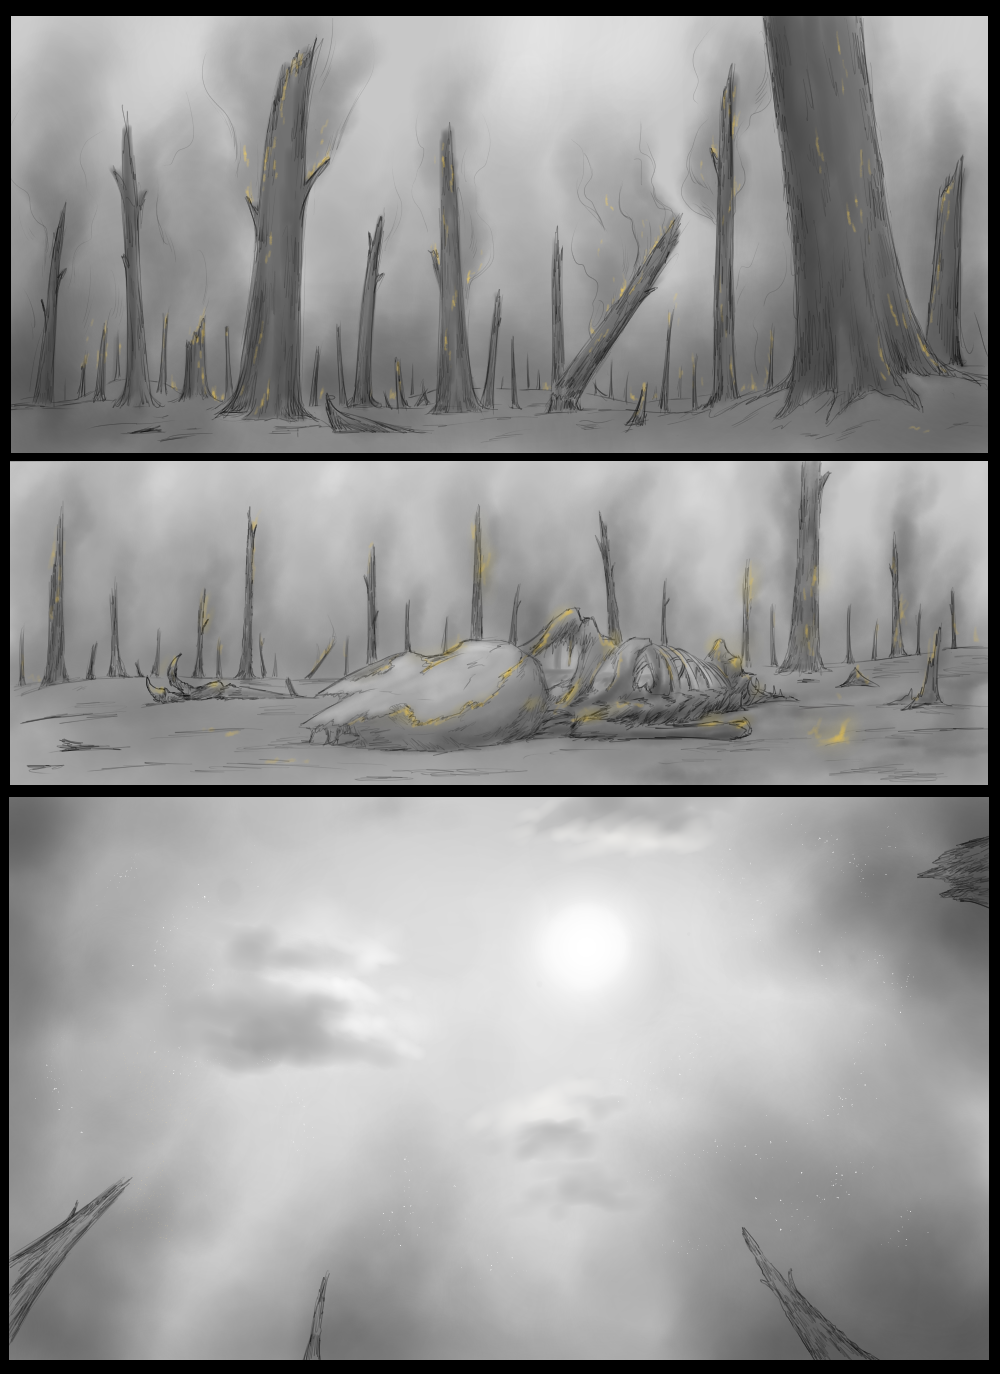 Page 89 - Aftermath